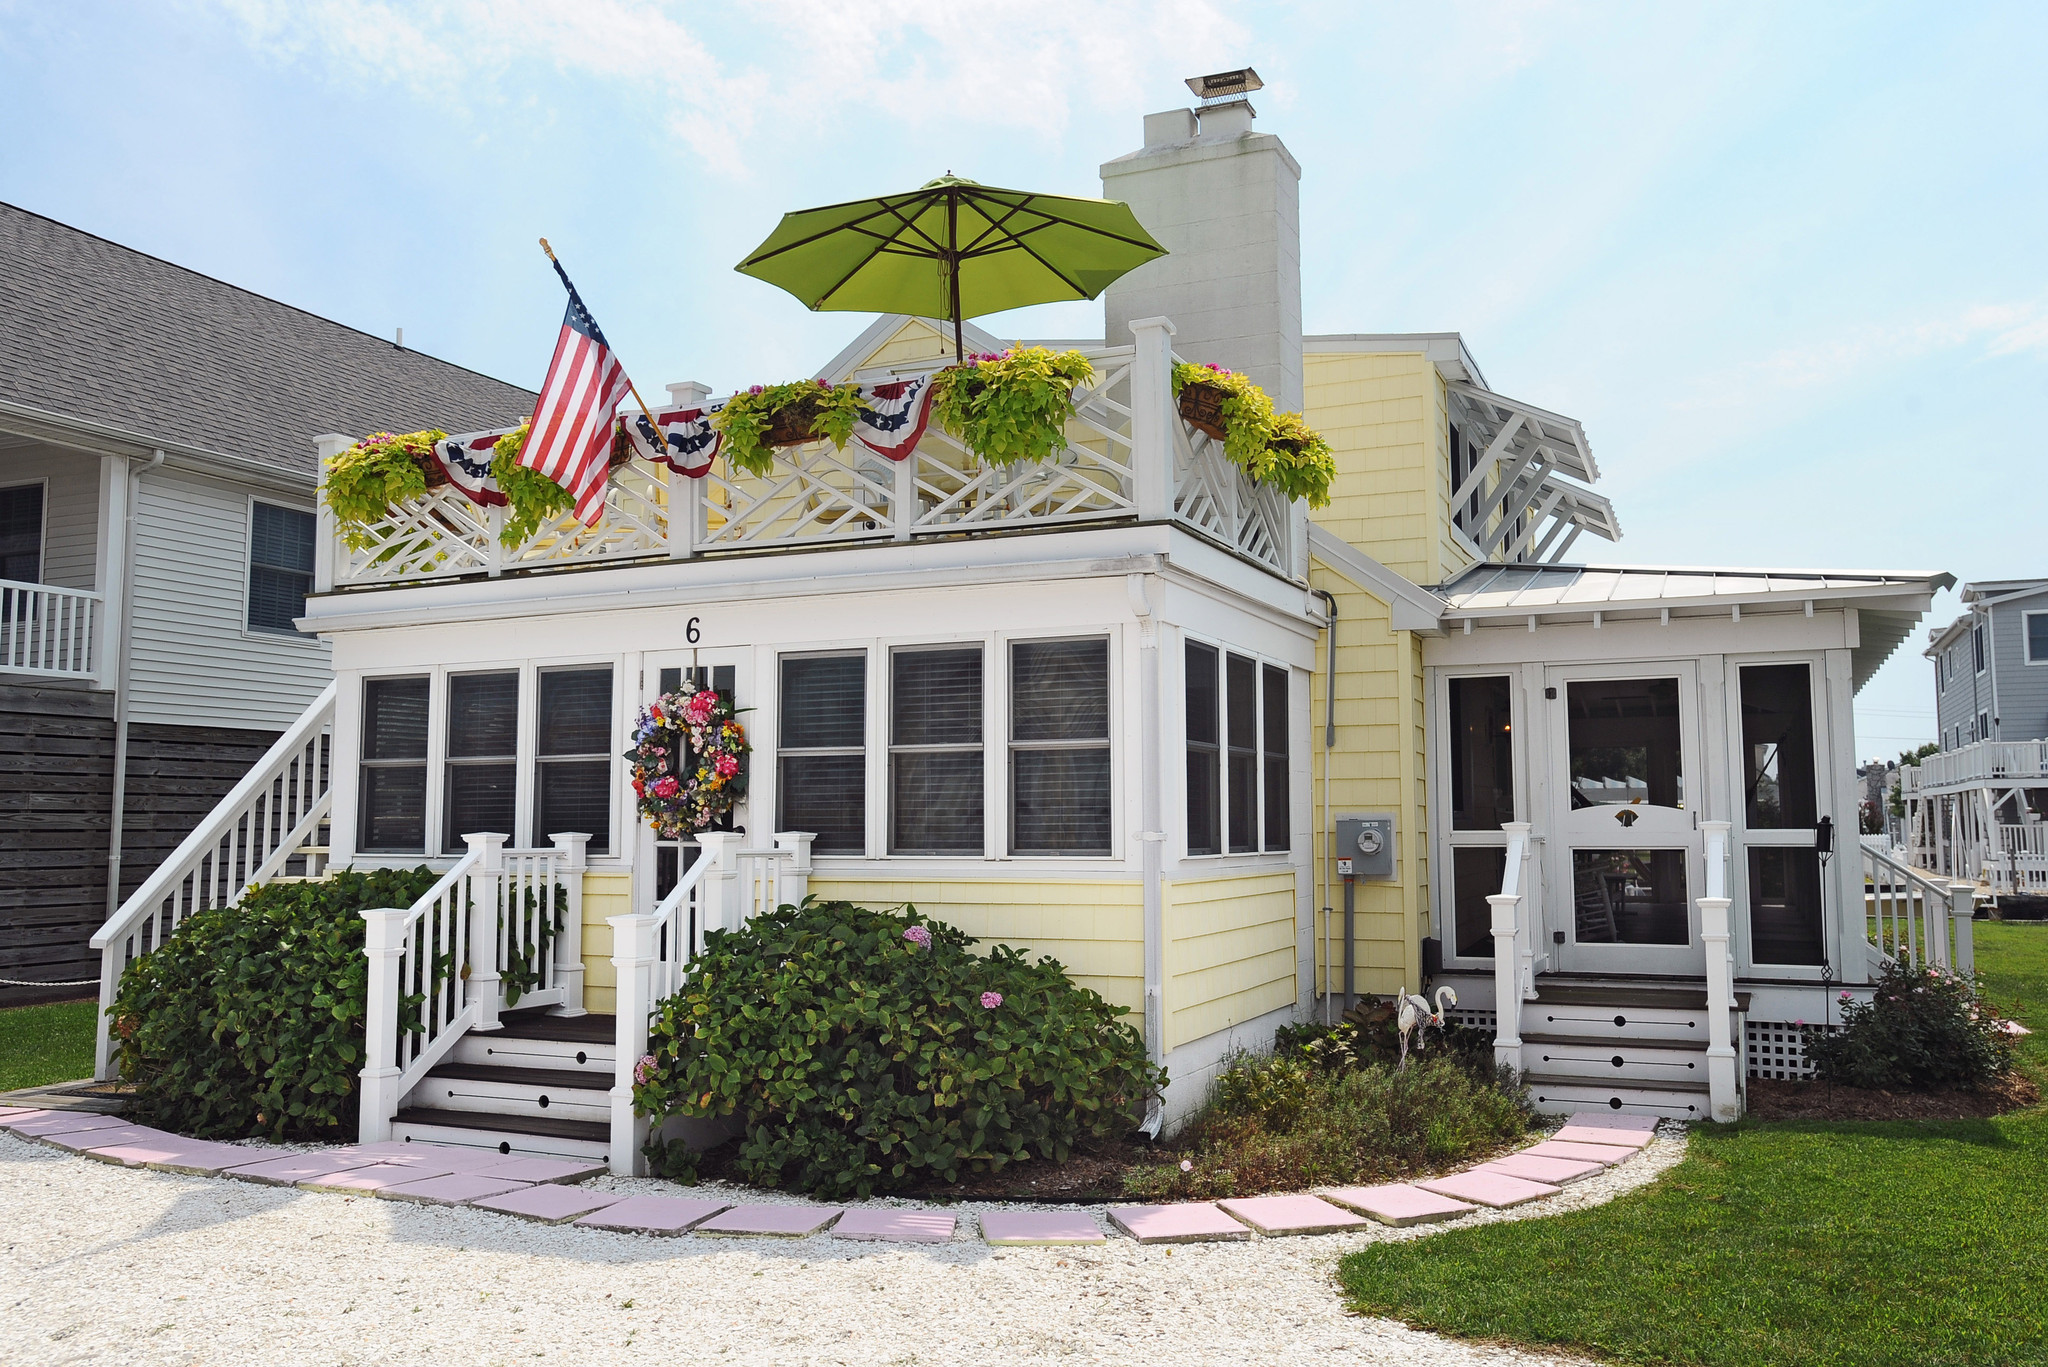 hgtv looking for beach house to renovate in rehoboth area baltimore sun - House Hunters Renovation Casting